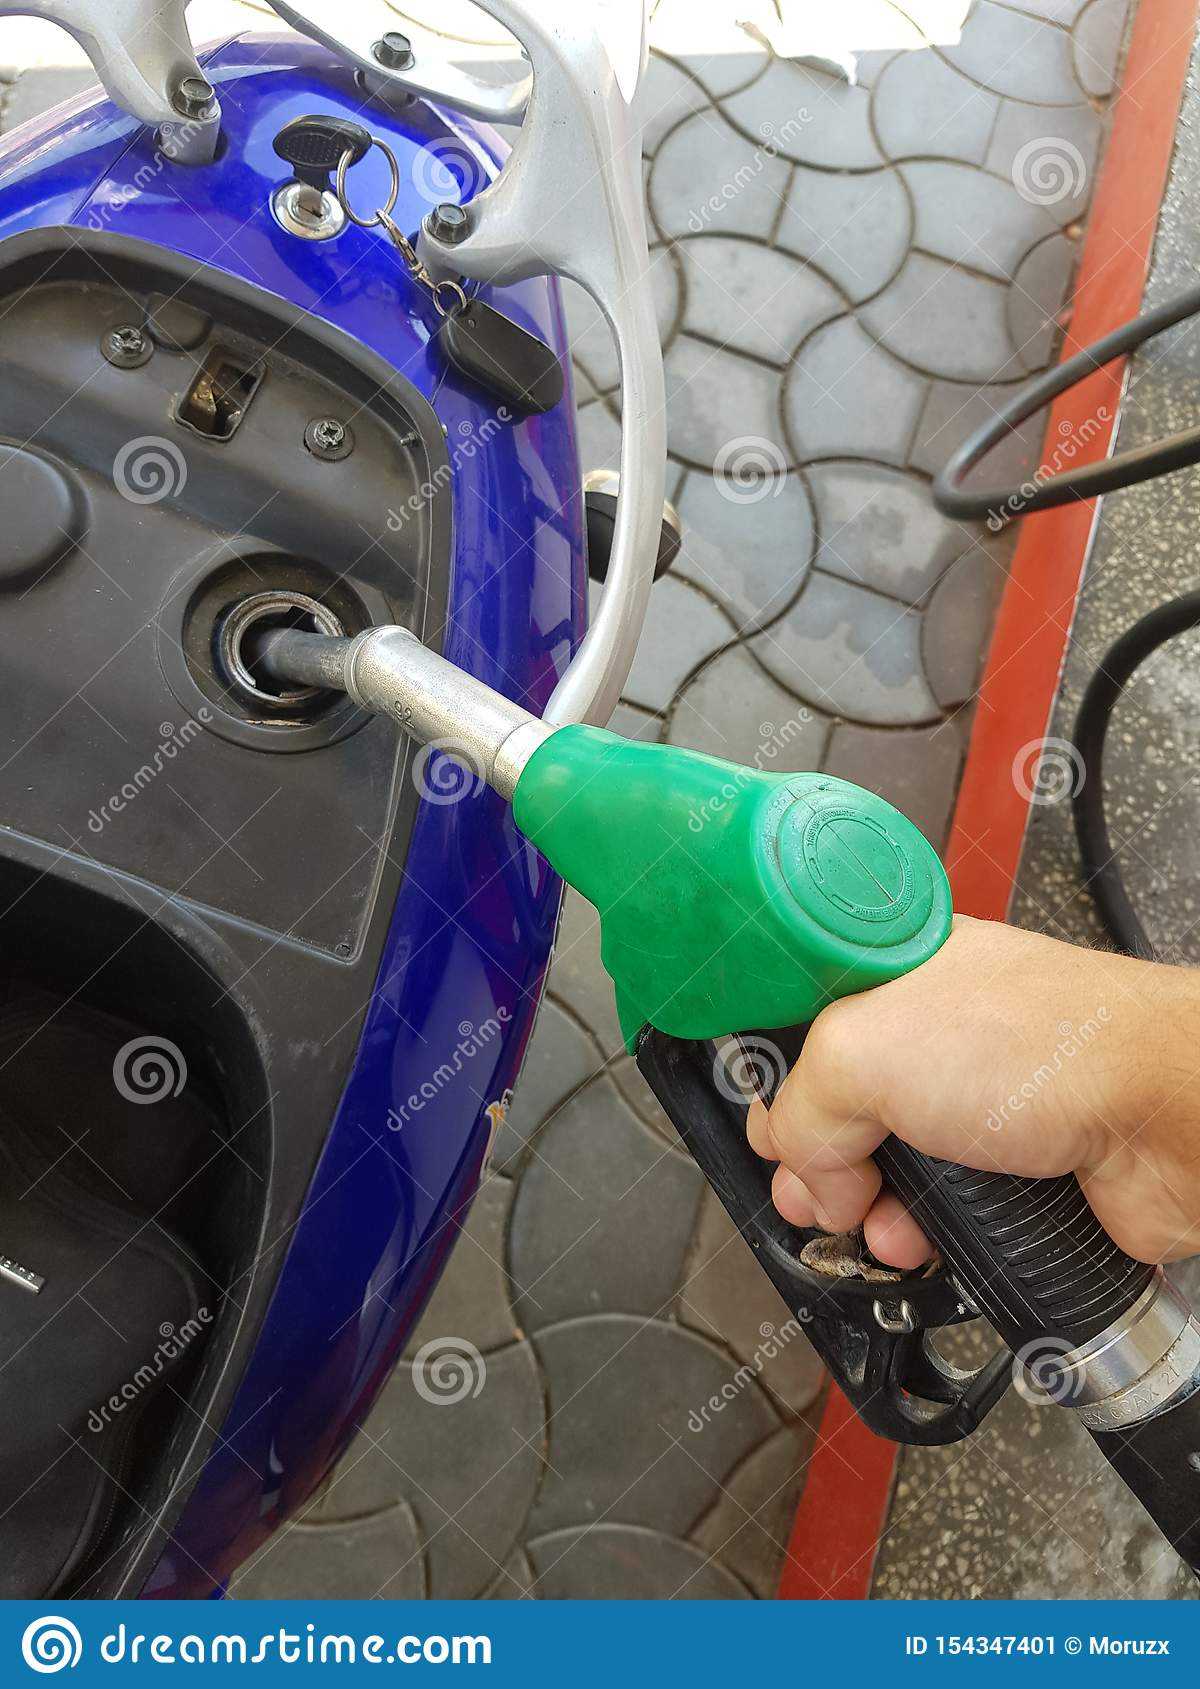 159 Gas Moped Photos Free Royalty Free Stock Photos From Dreamstime